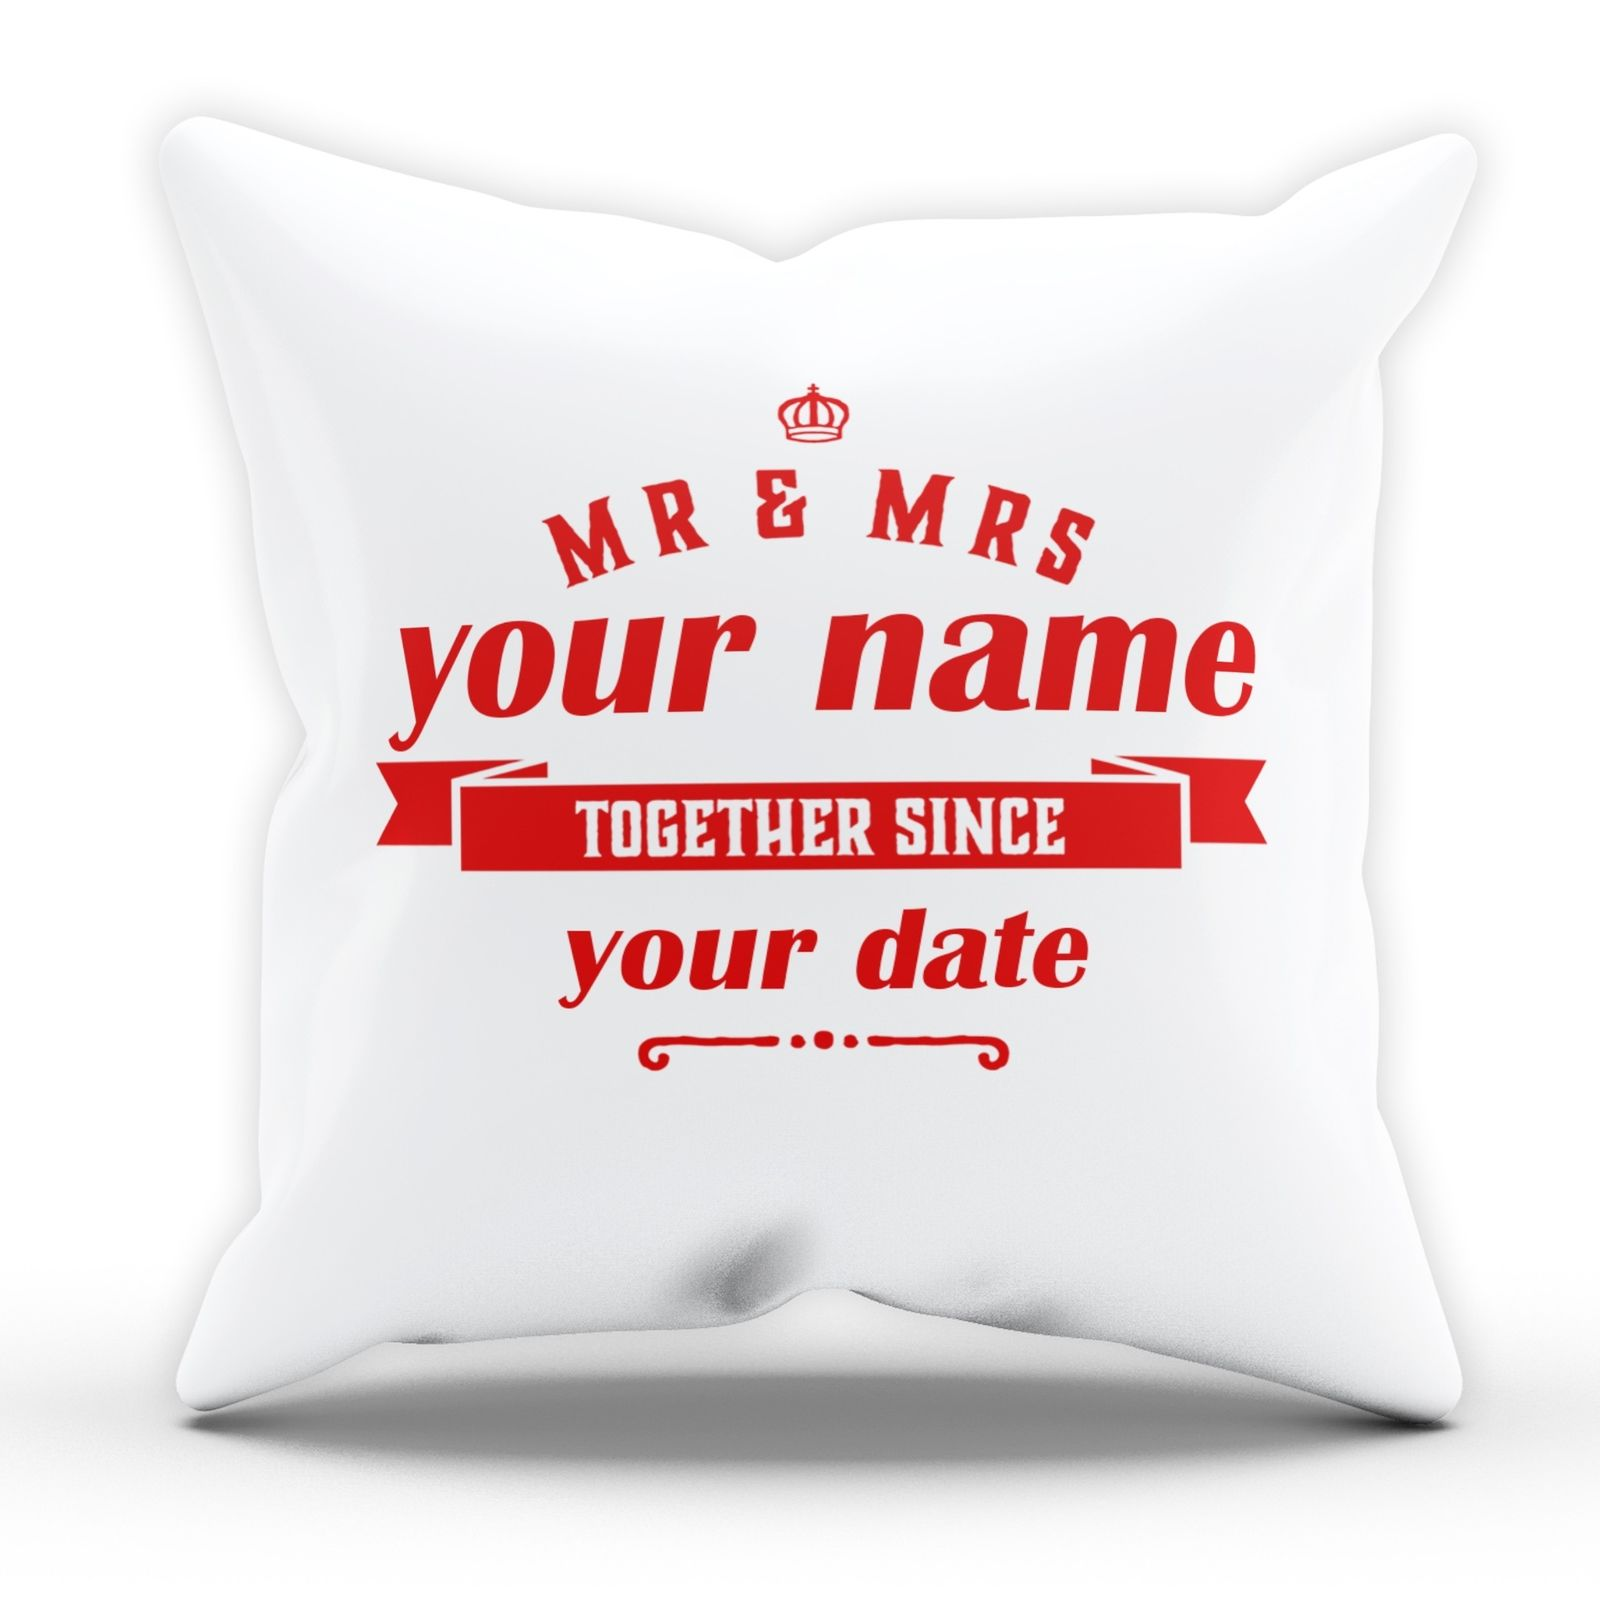 Ace Fa personalised mr and mrs together since cushion valentines wedding gift  em179 - the clothing shed